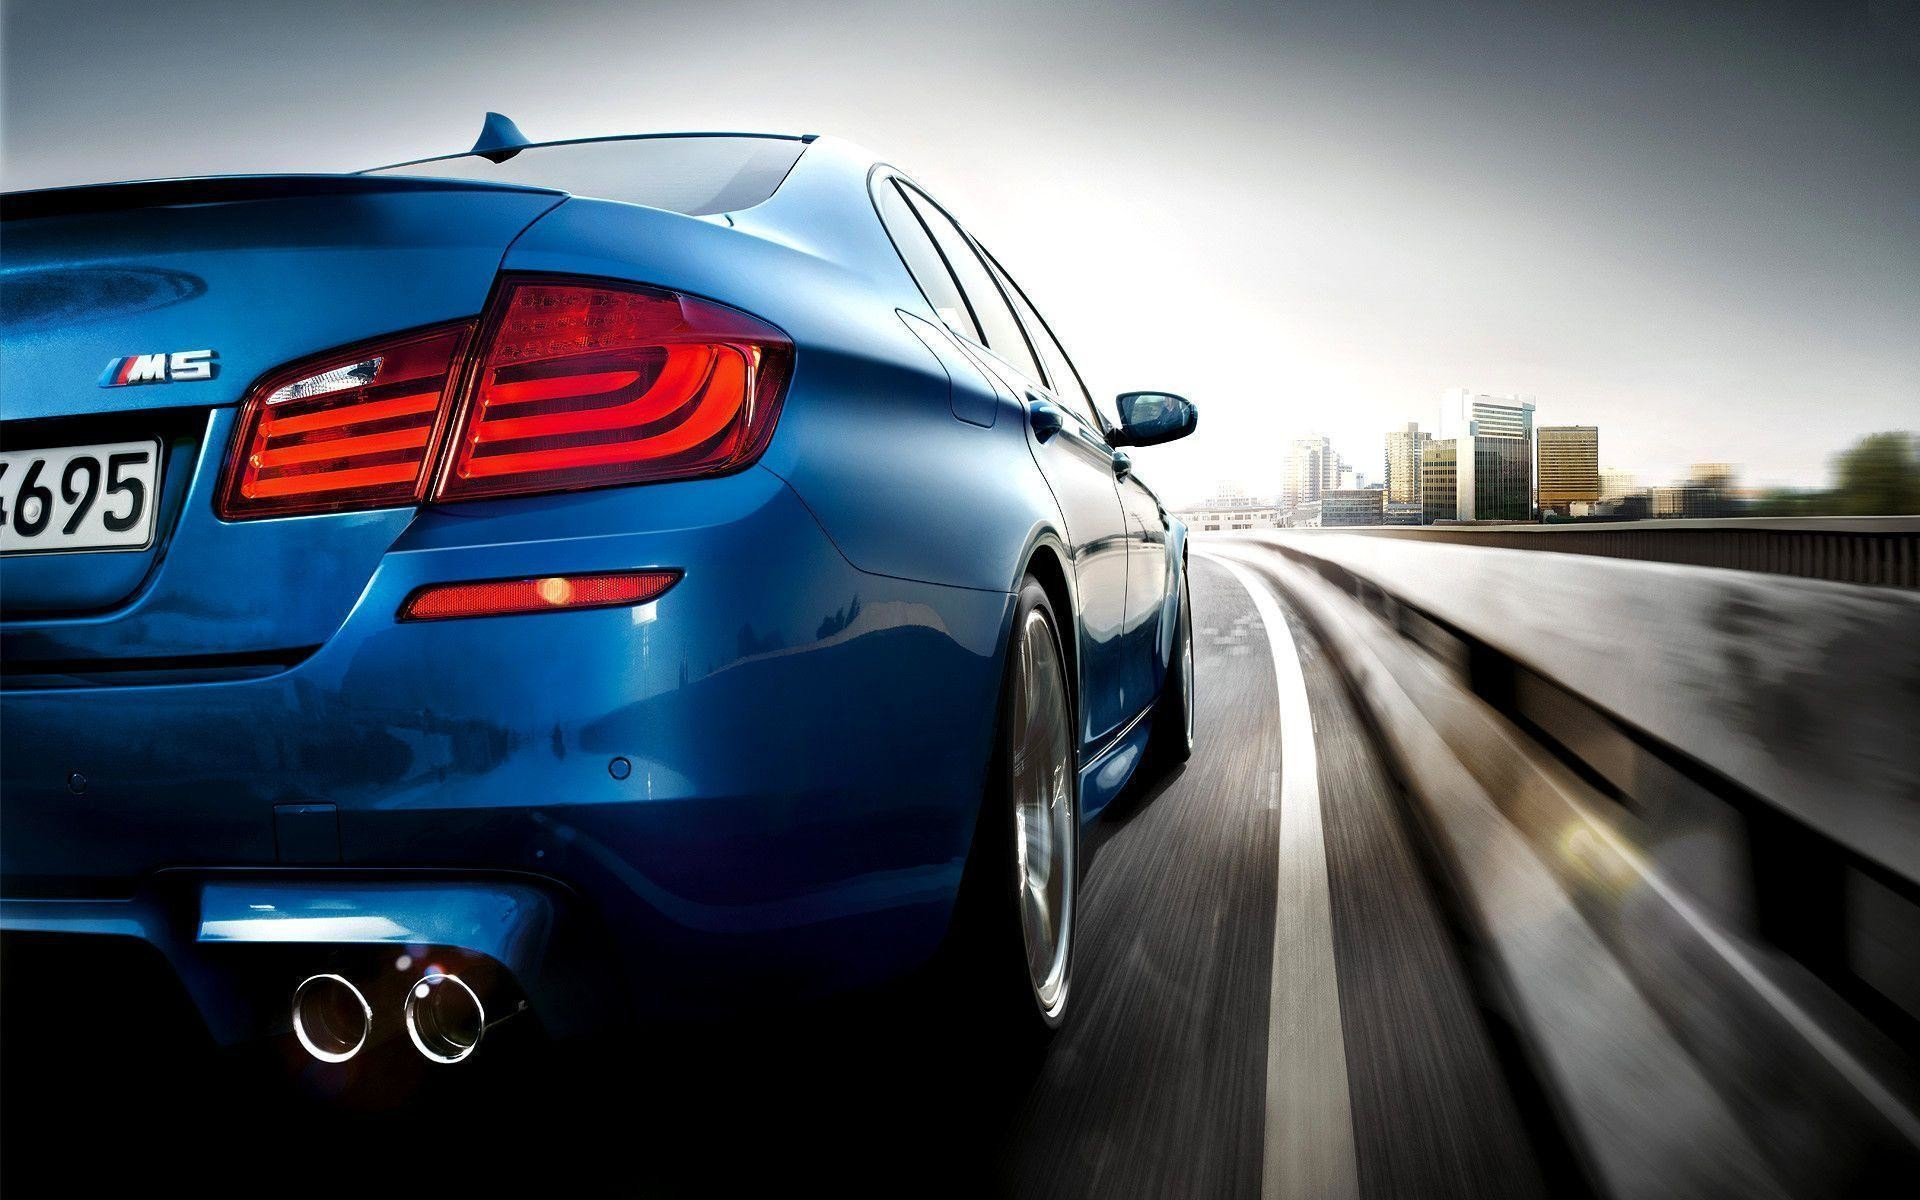 Res: 1920x1200, Best BMW Wallpapers For Desktop & Tablets in HD For Download